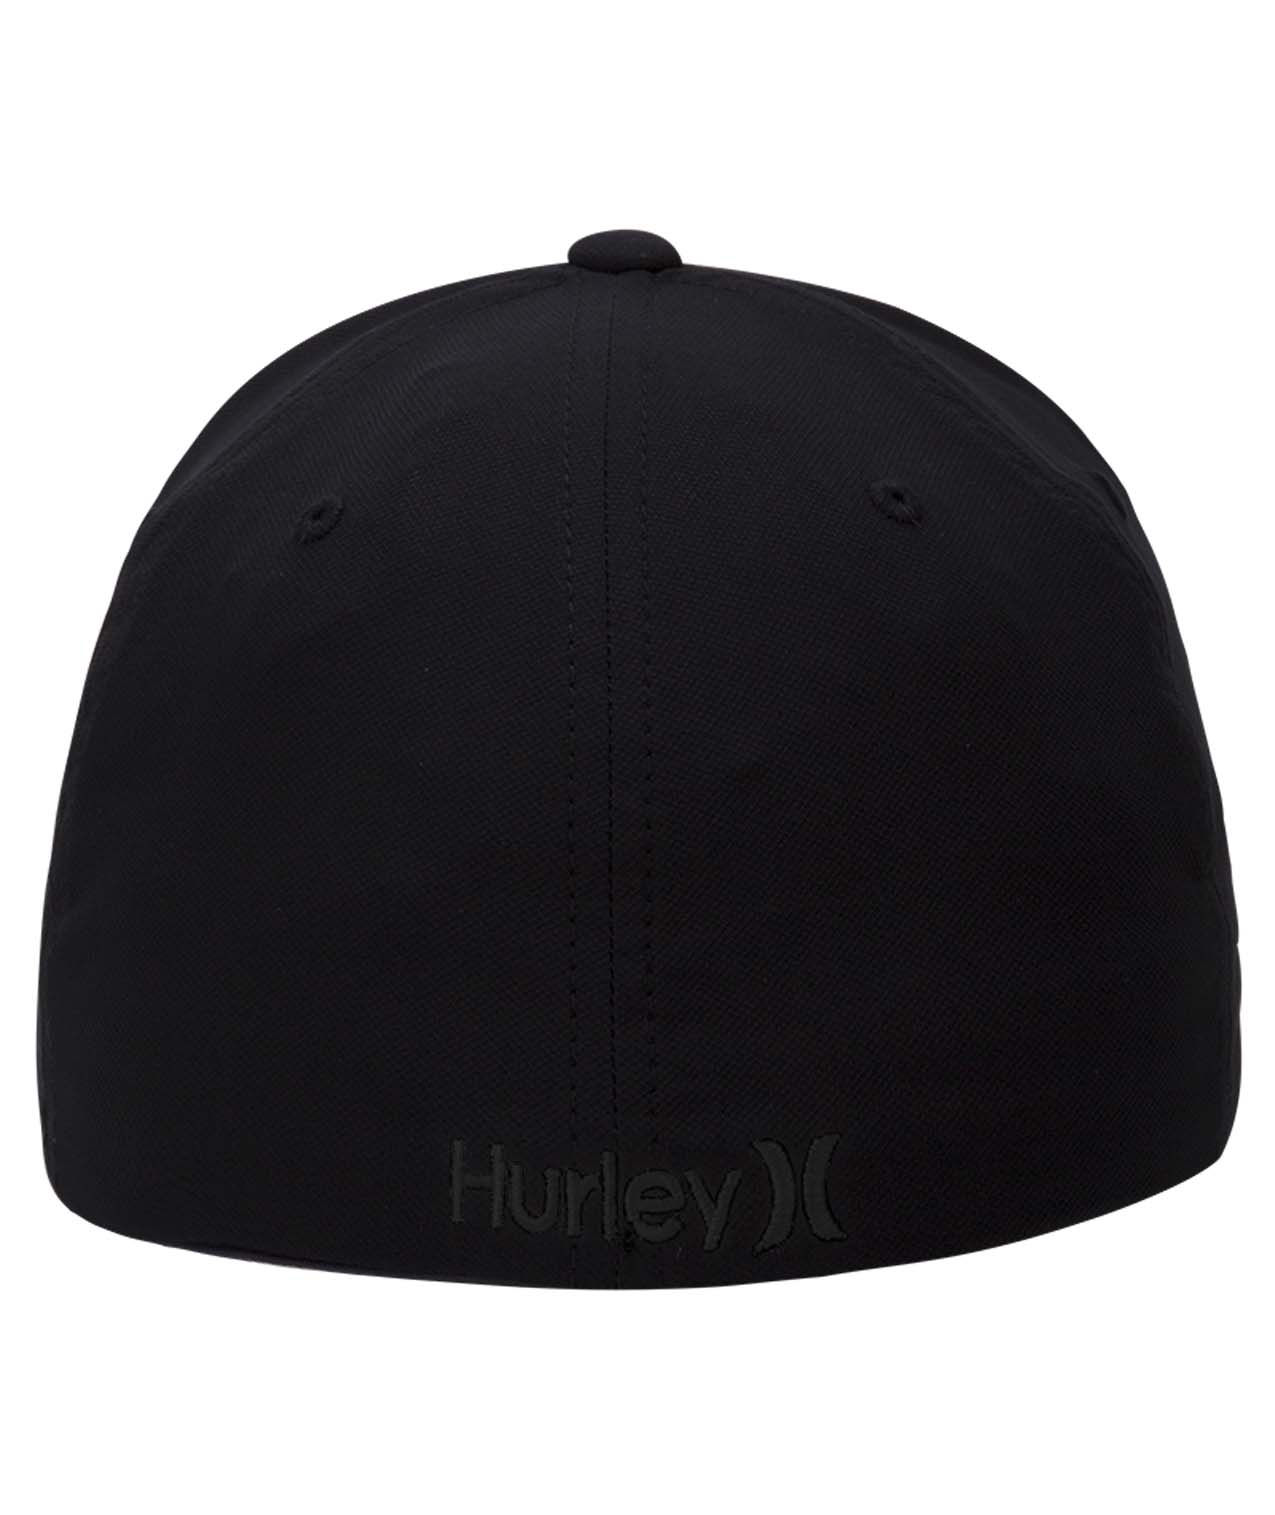 HURLEY DRI-FIT O&O 2.0 HAT BB